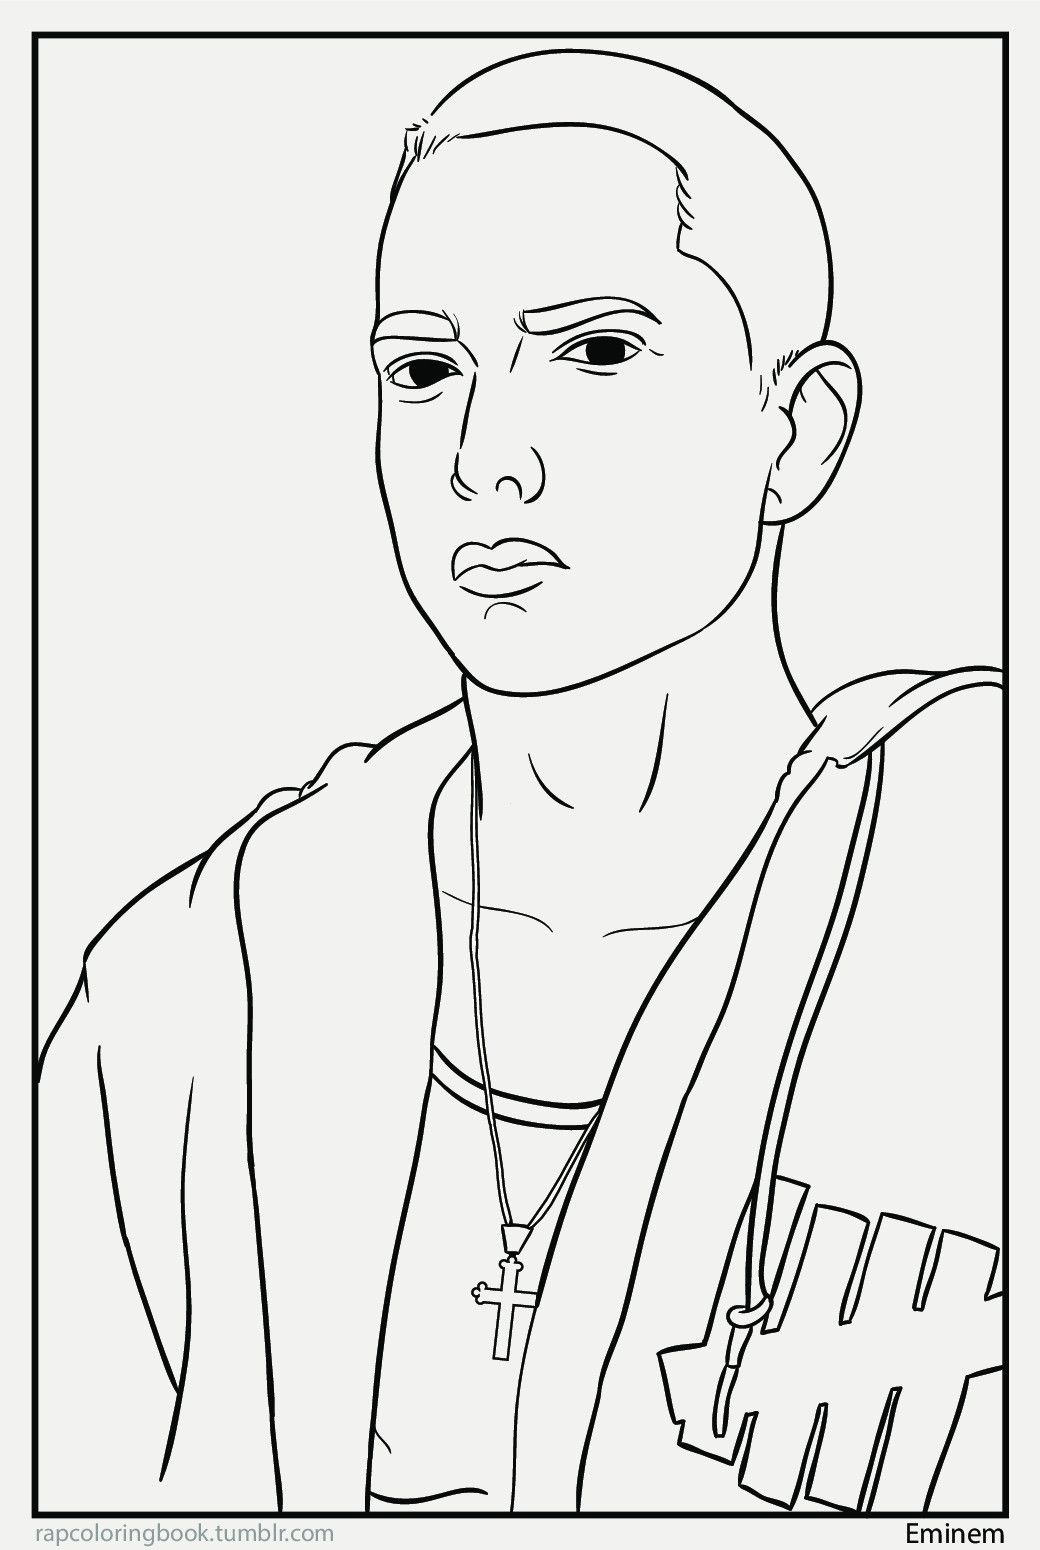 Hip hop coloring pages coloring home for Rapper coloring pages